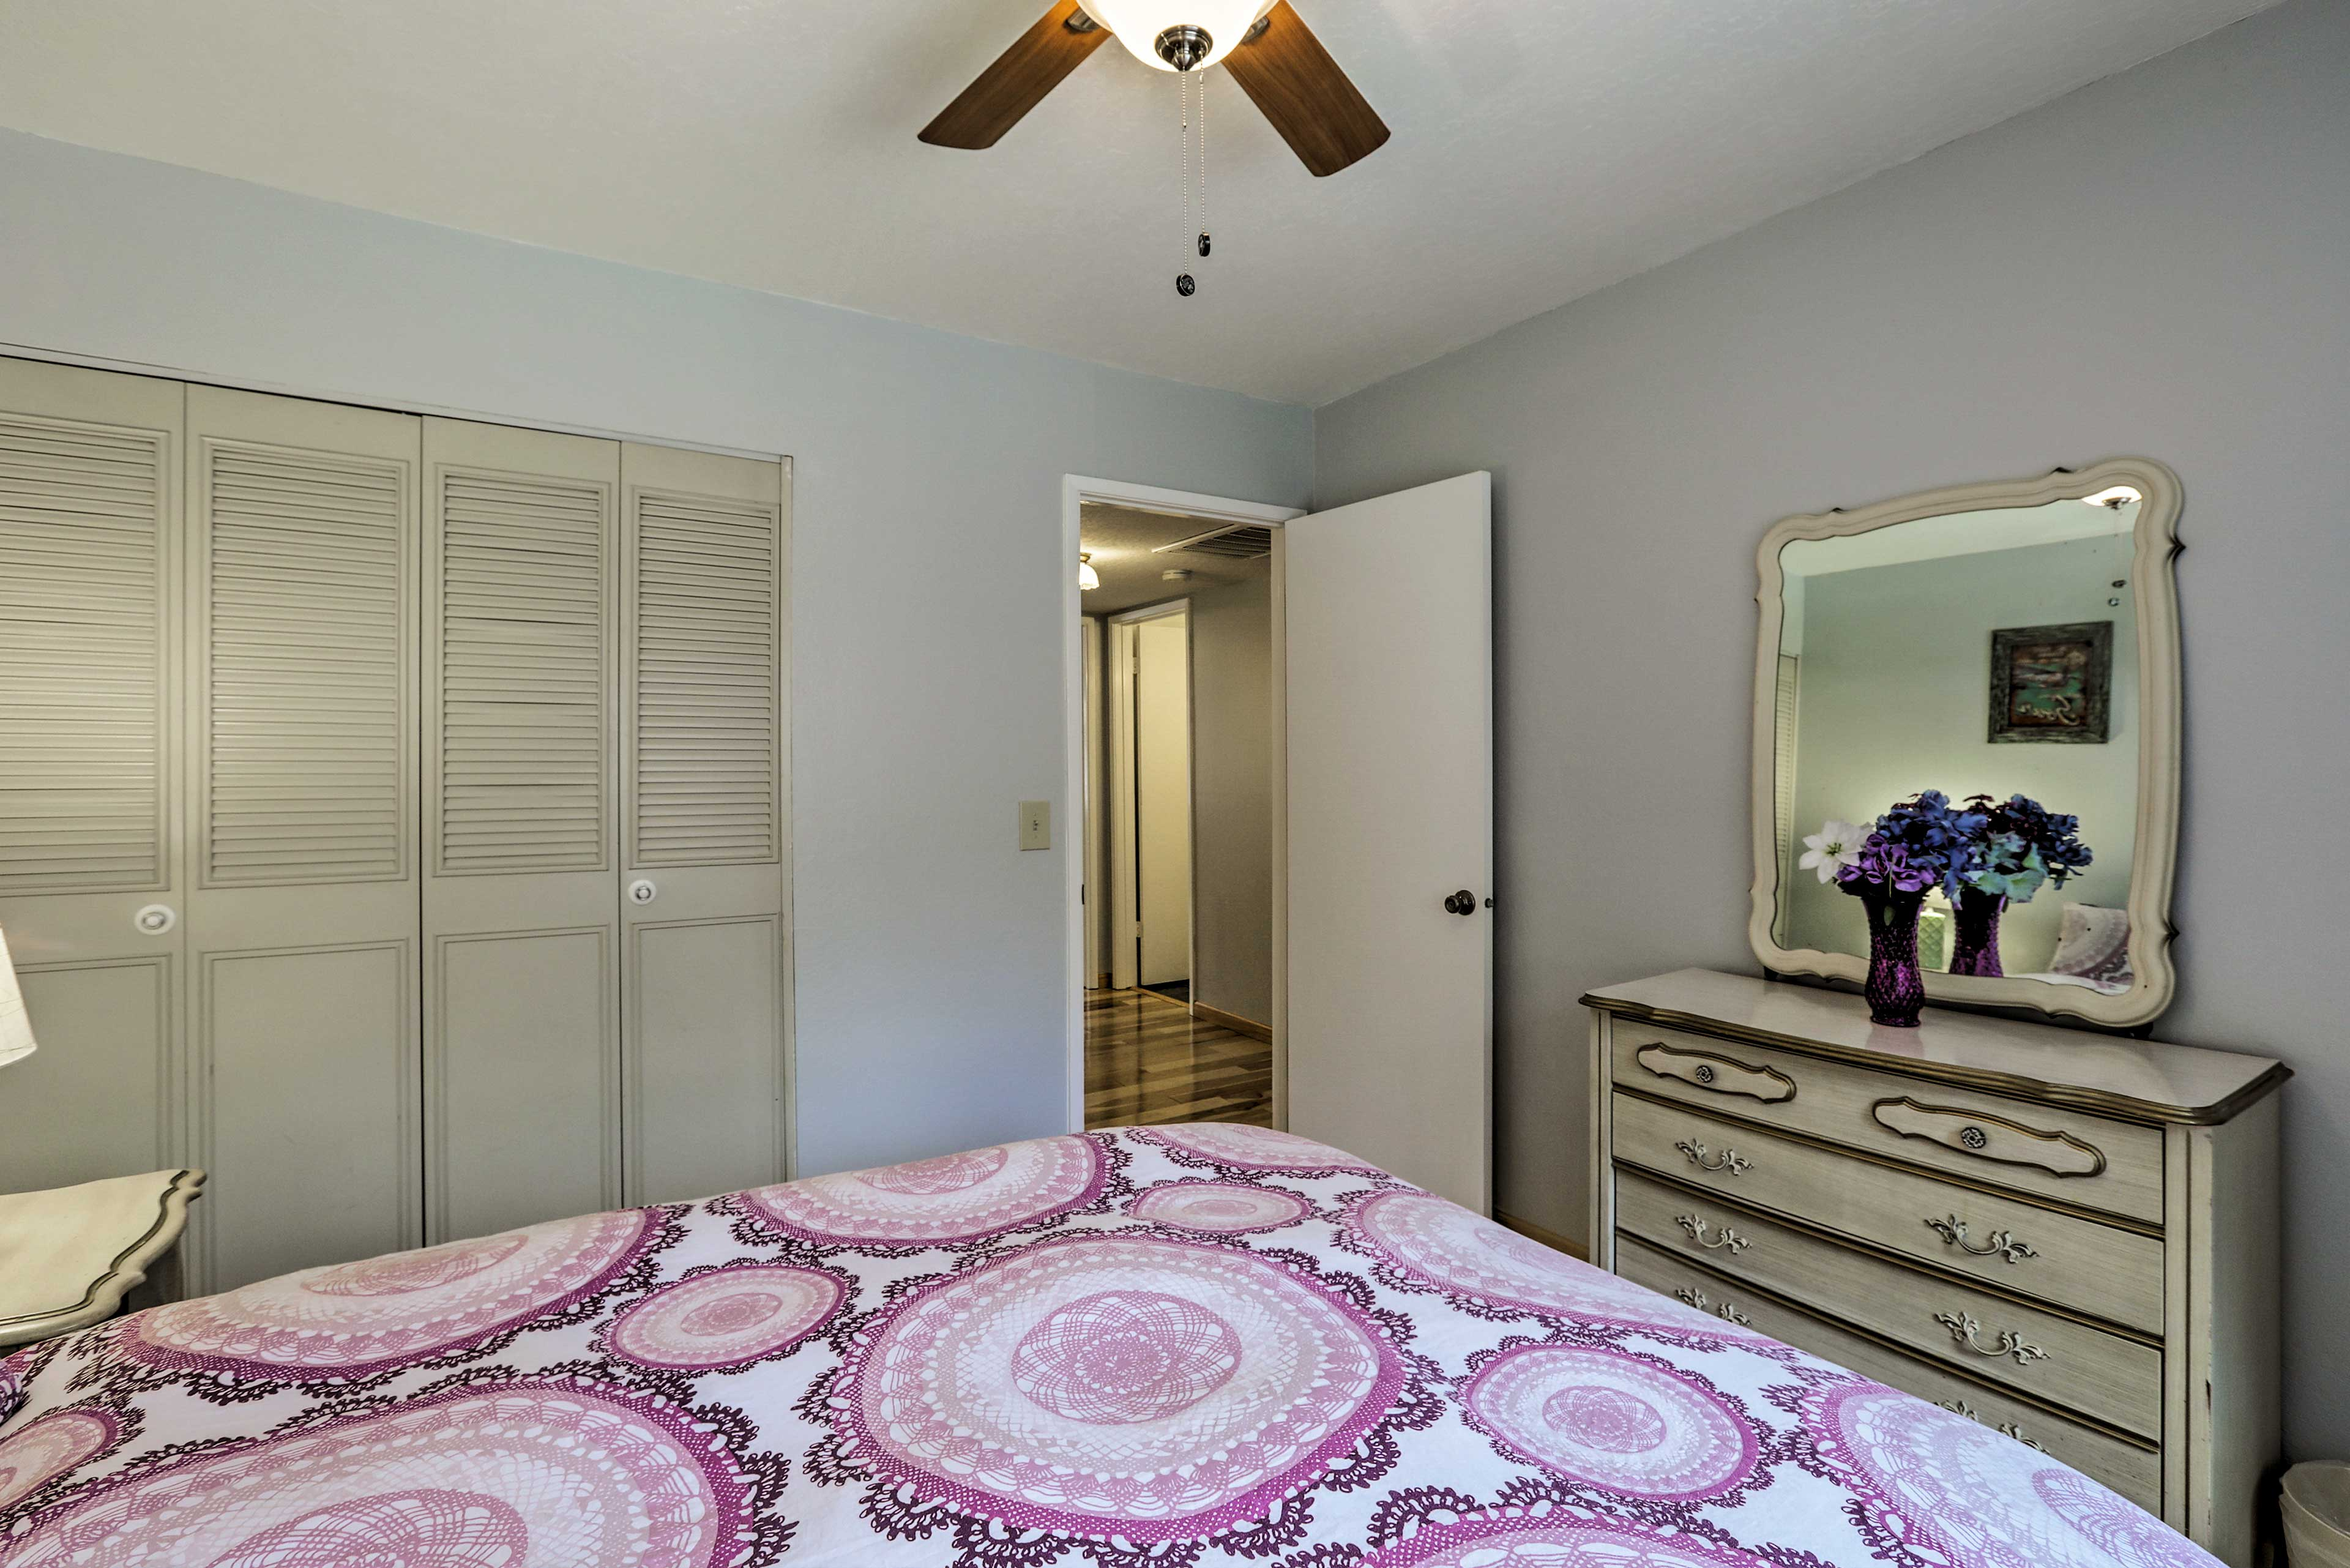 Sleep soundly in this well-appointed room.